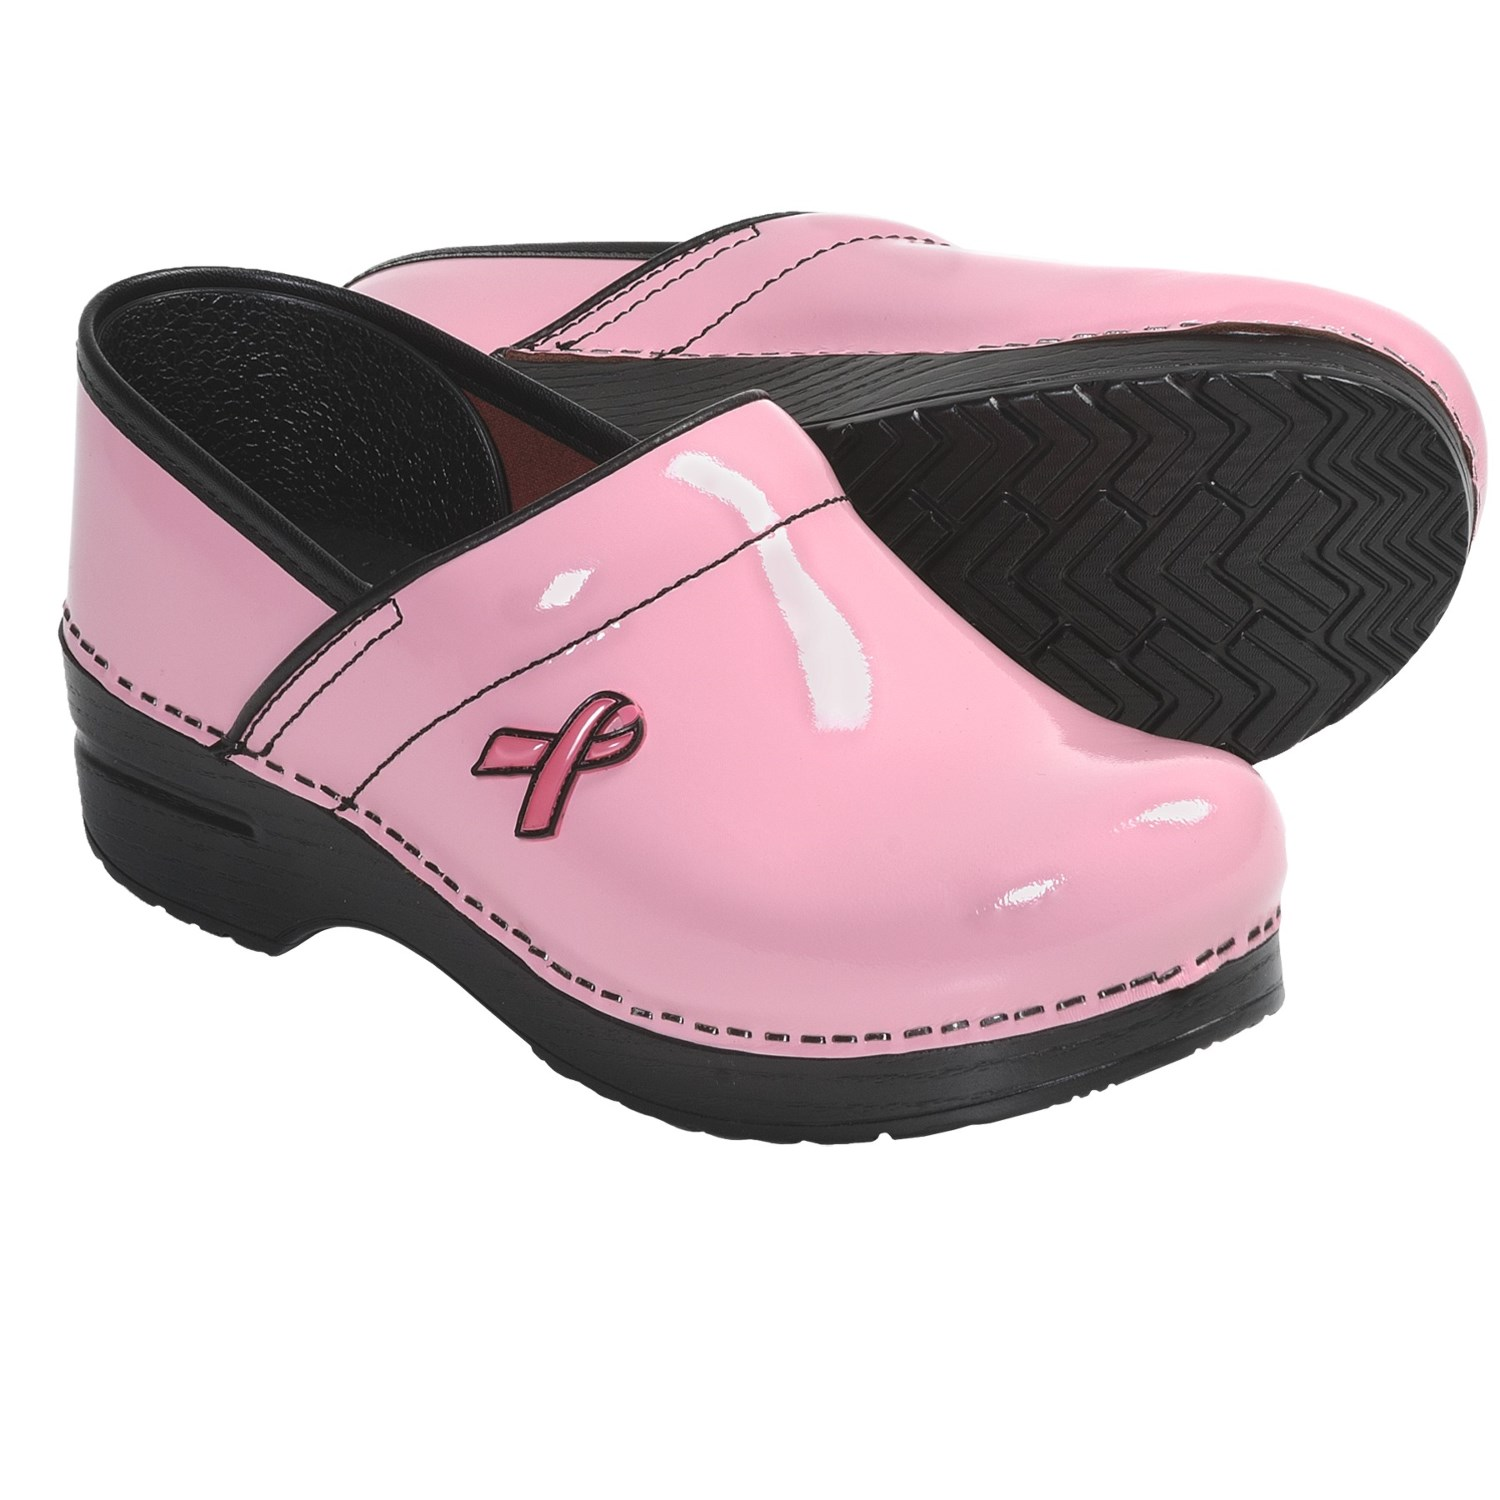 Dansko Professional Clogs Patent Leather For Women